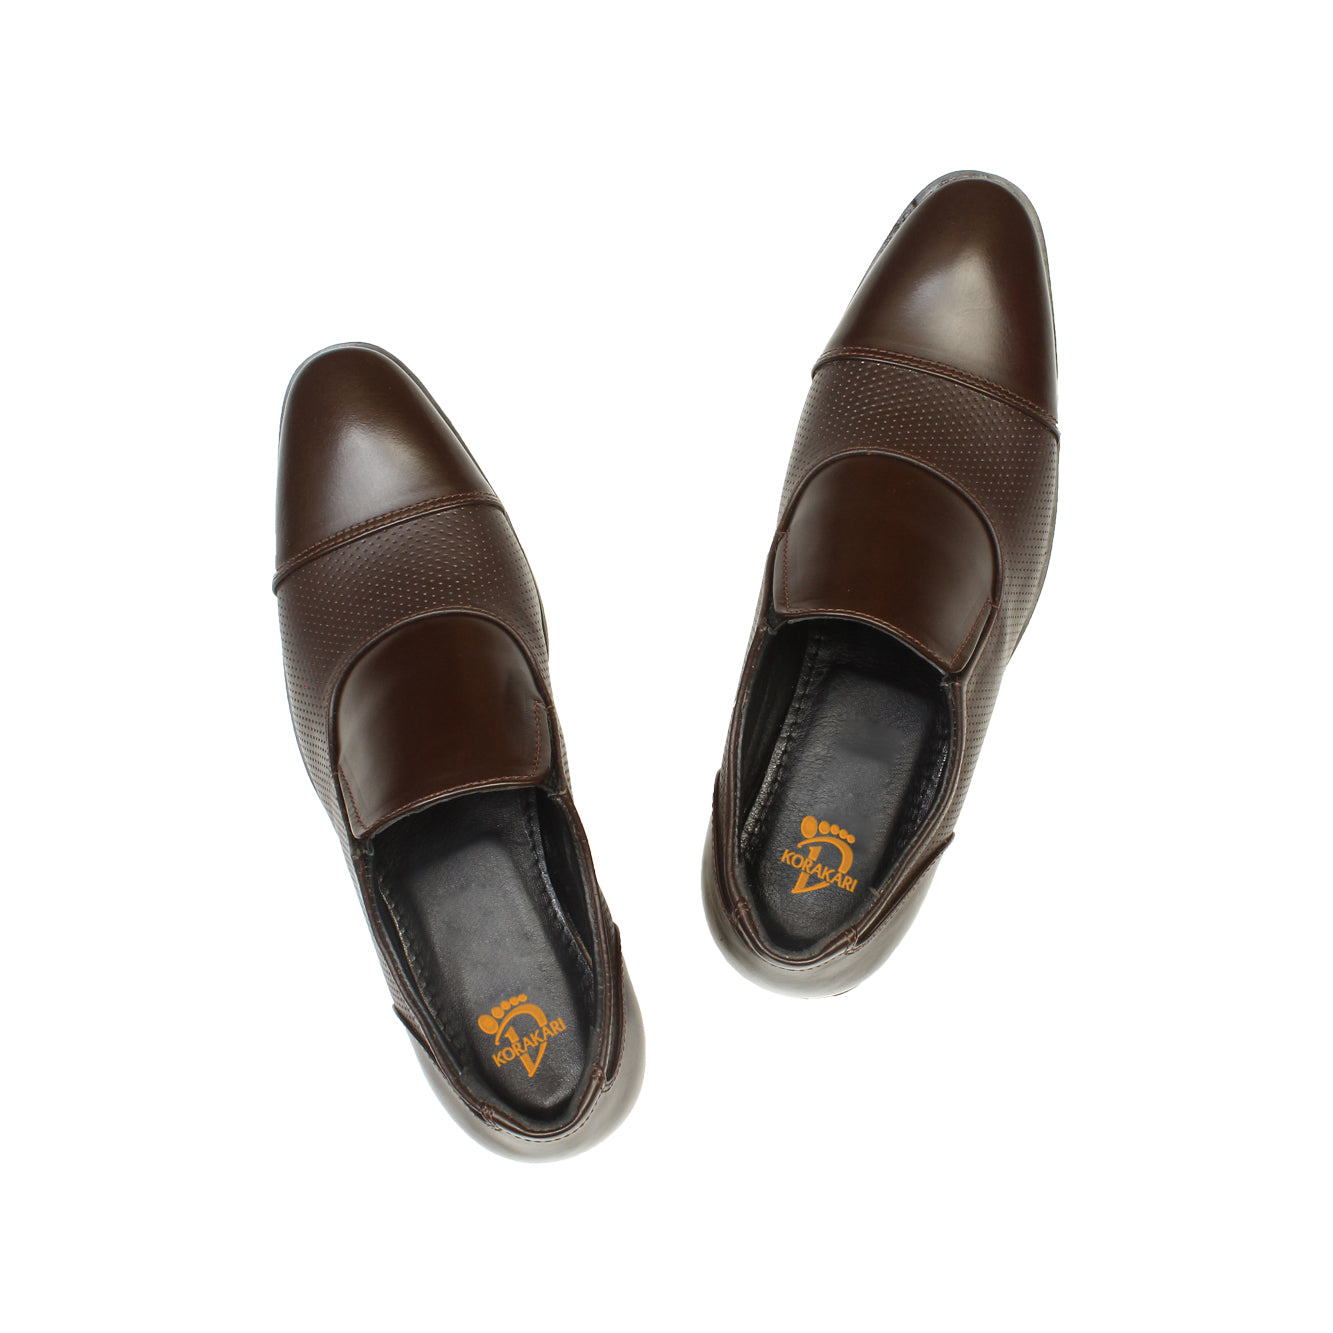 Cleverly Handcrafted in Genuine Brown Leather Elastic Slip-on Shoe for Men KRKA-S-027